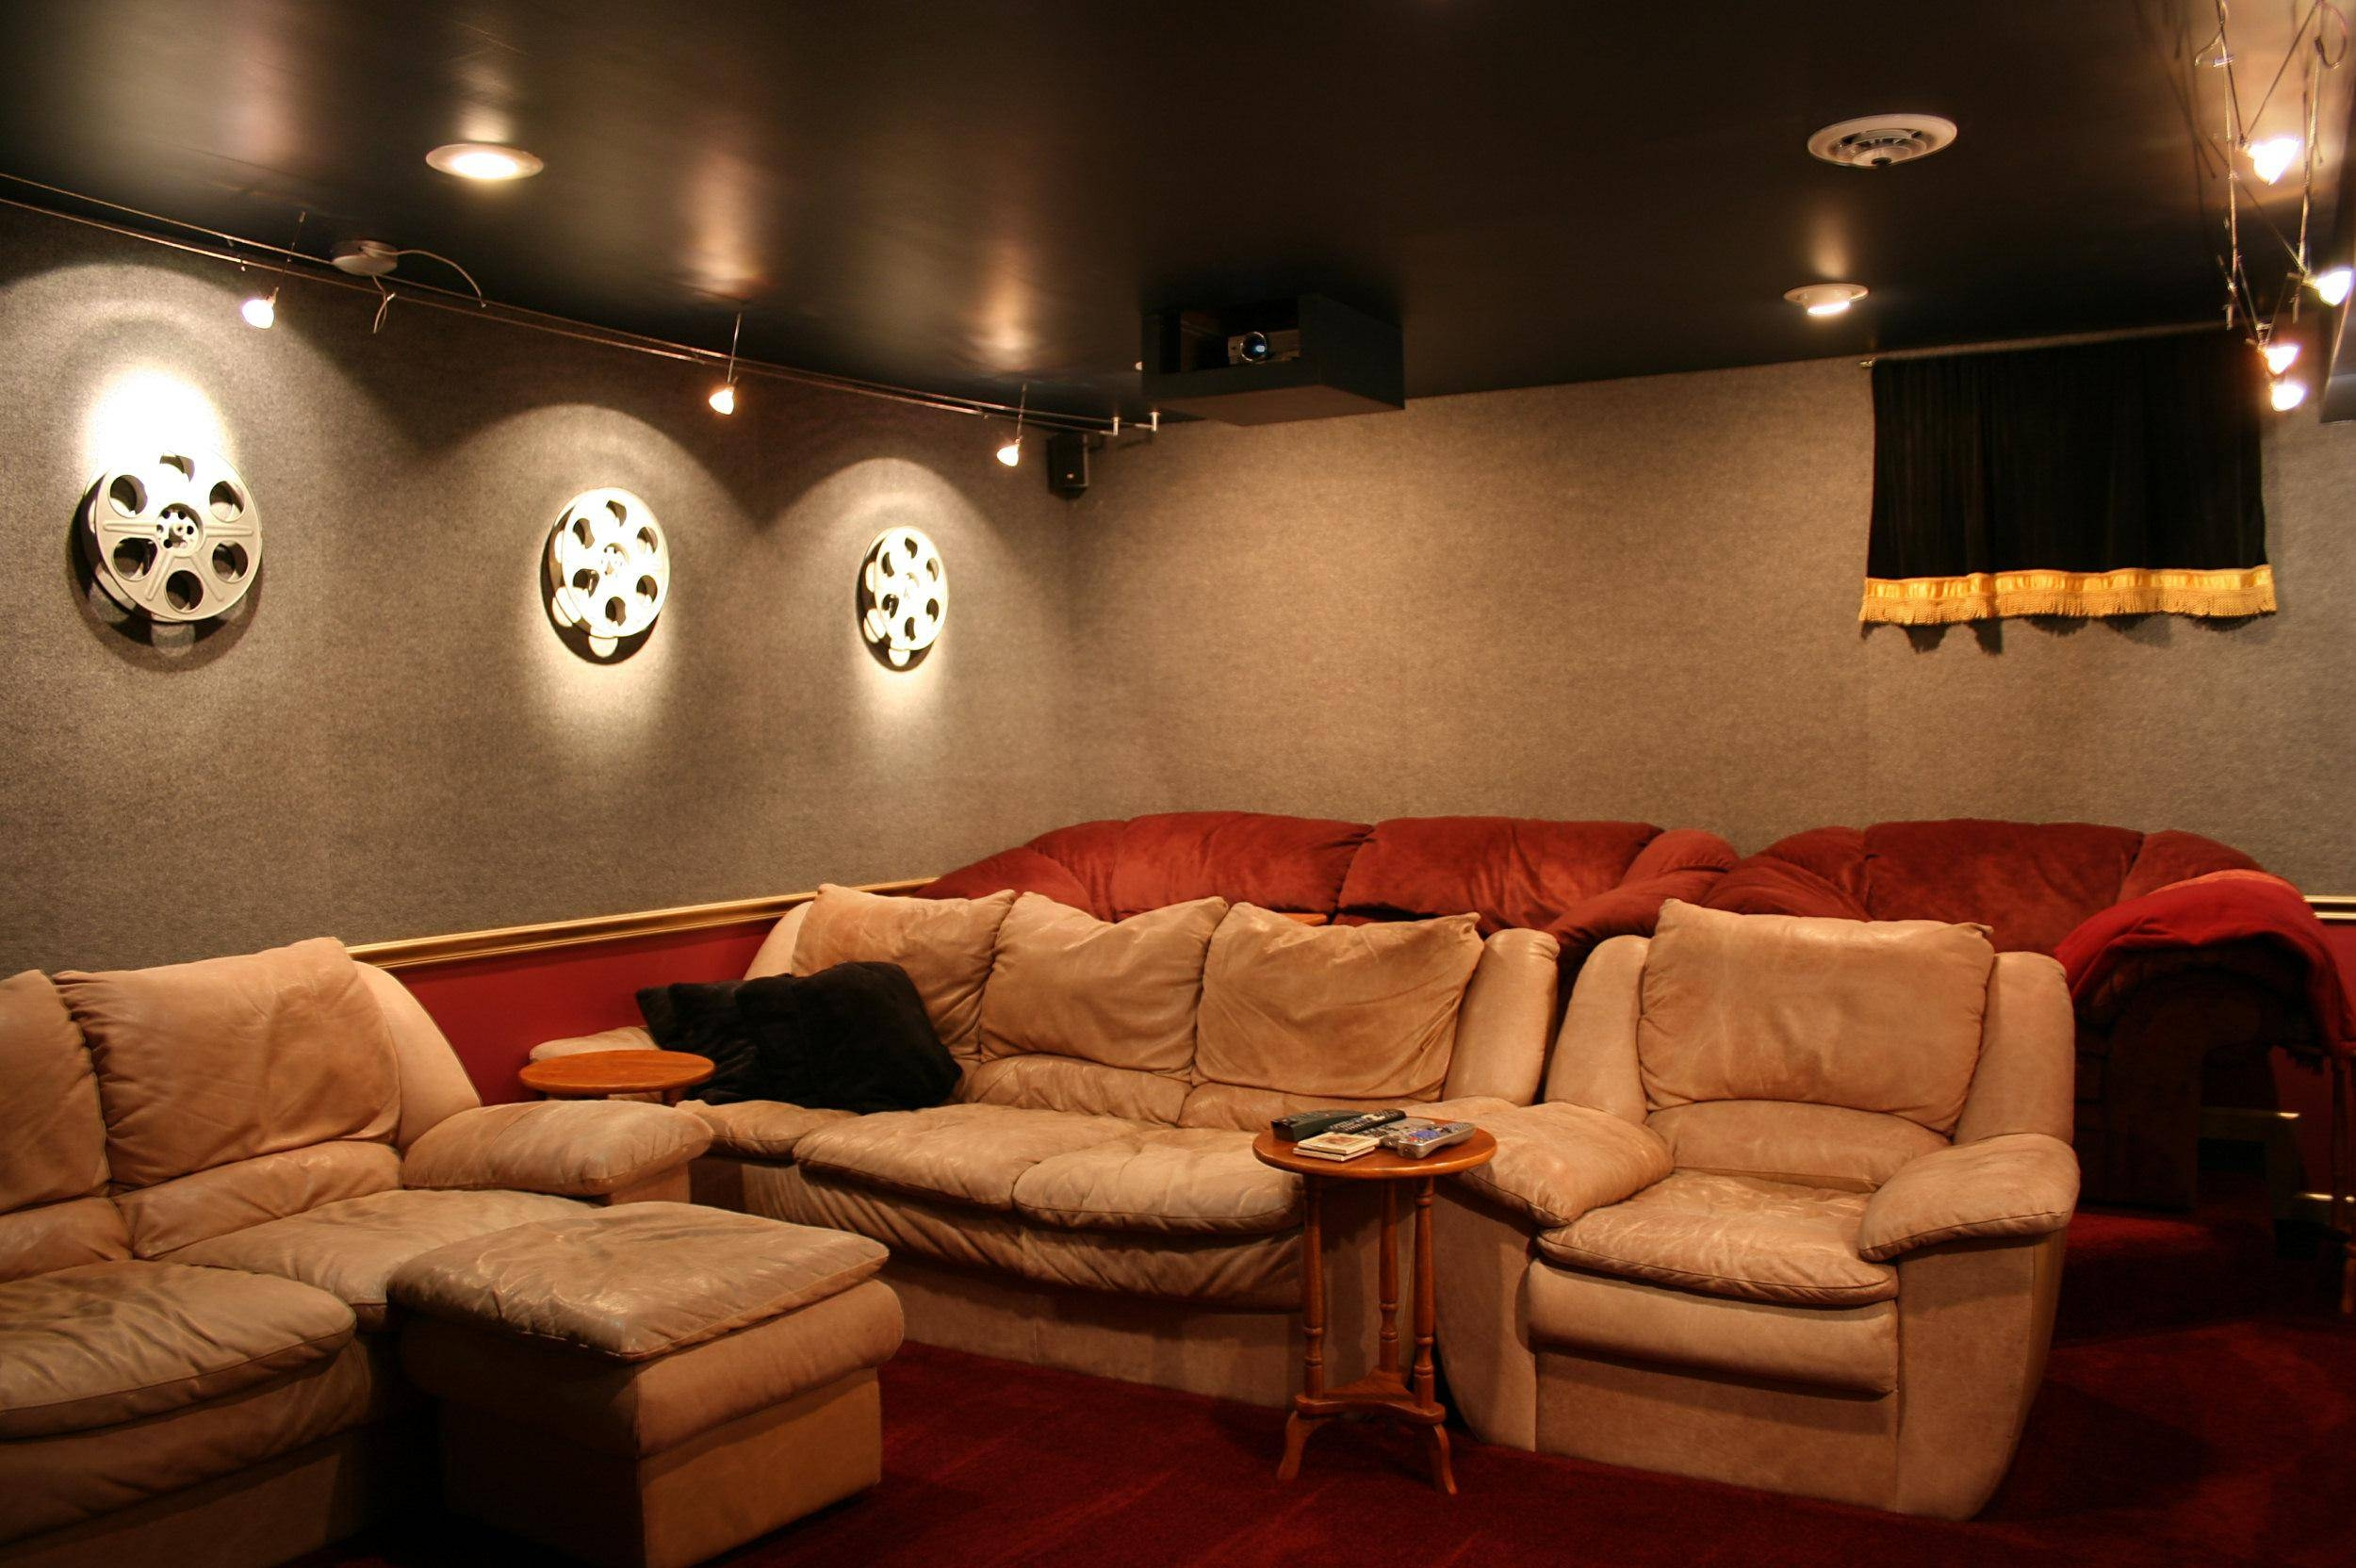 Cozy Wall Decor Home Theater Room Size Home Theater Decor Wall Art Throughout Most Recent Home Theater Wall Art (View 6 of 30)